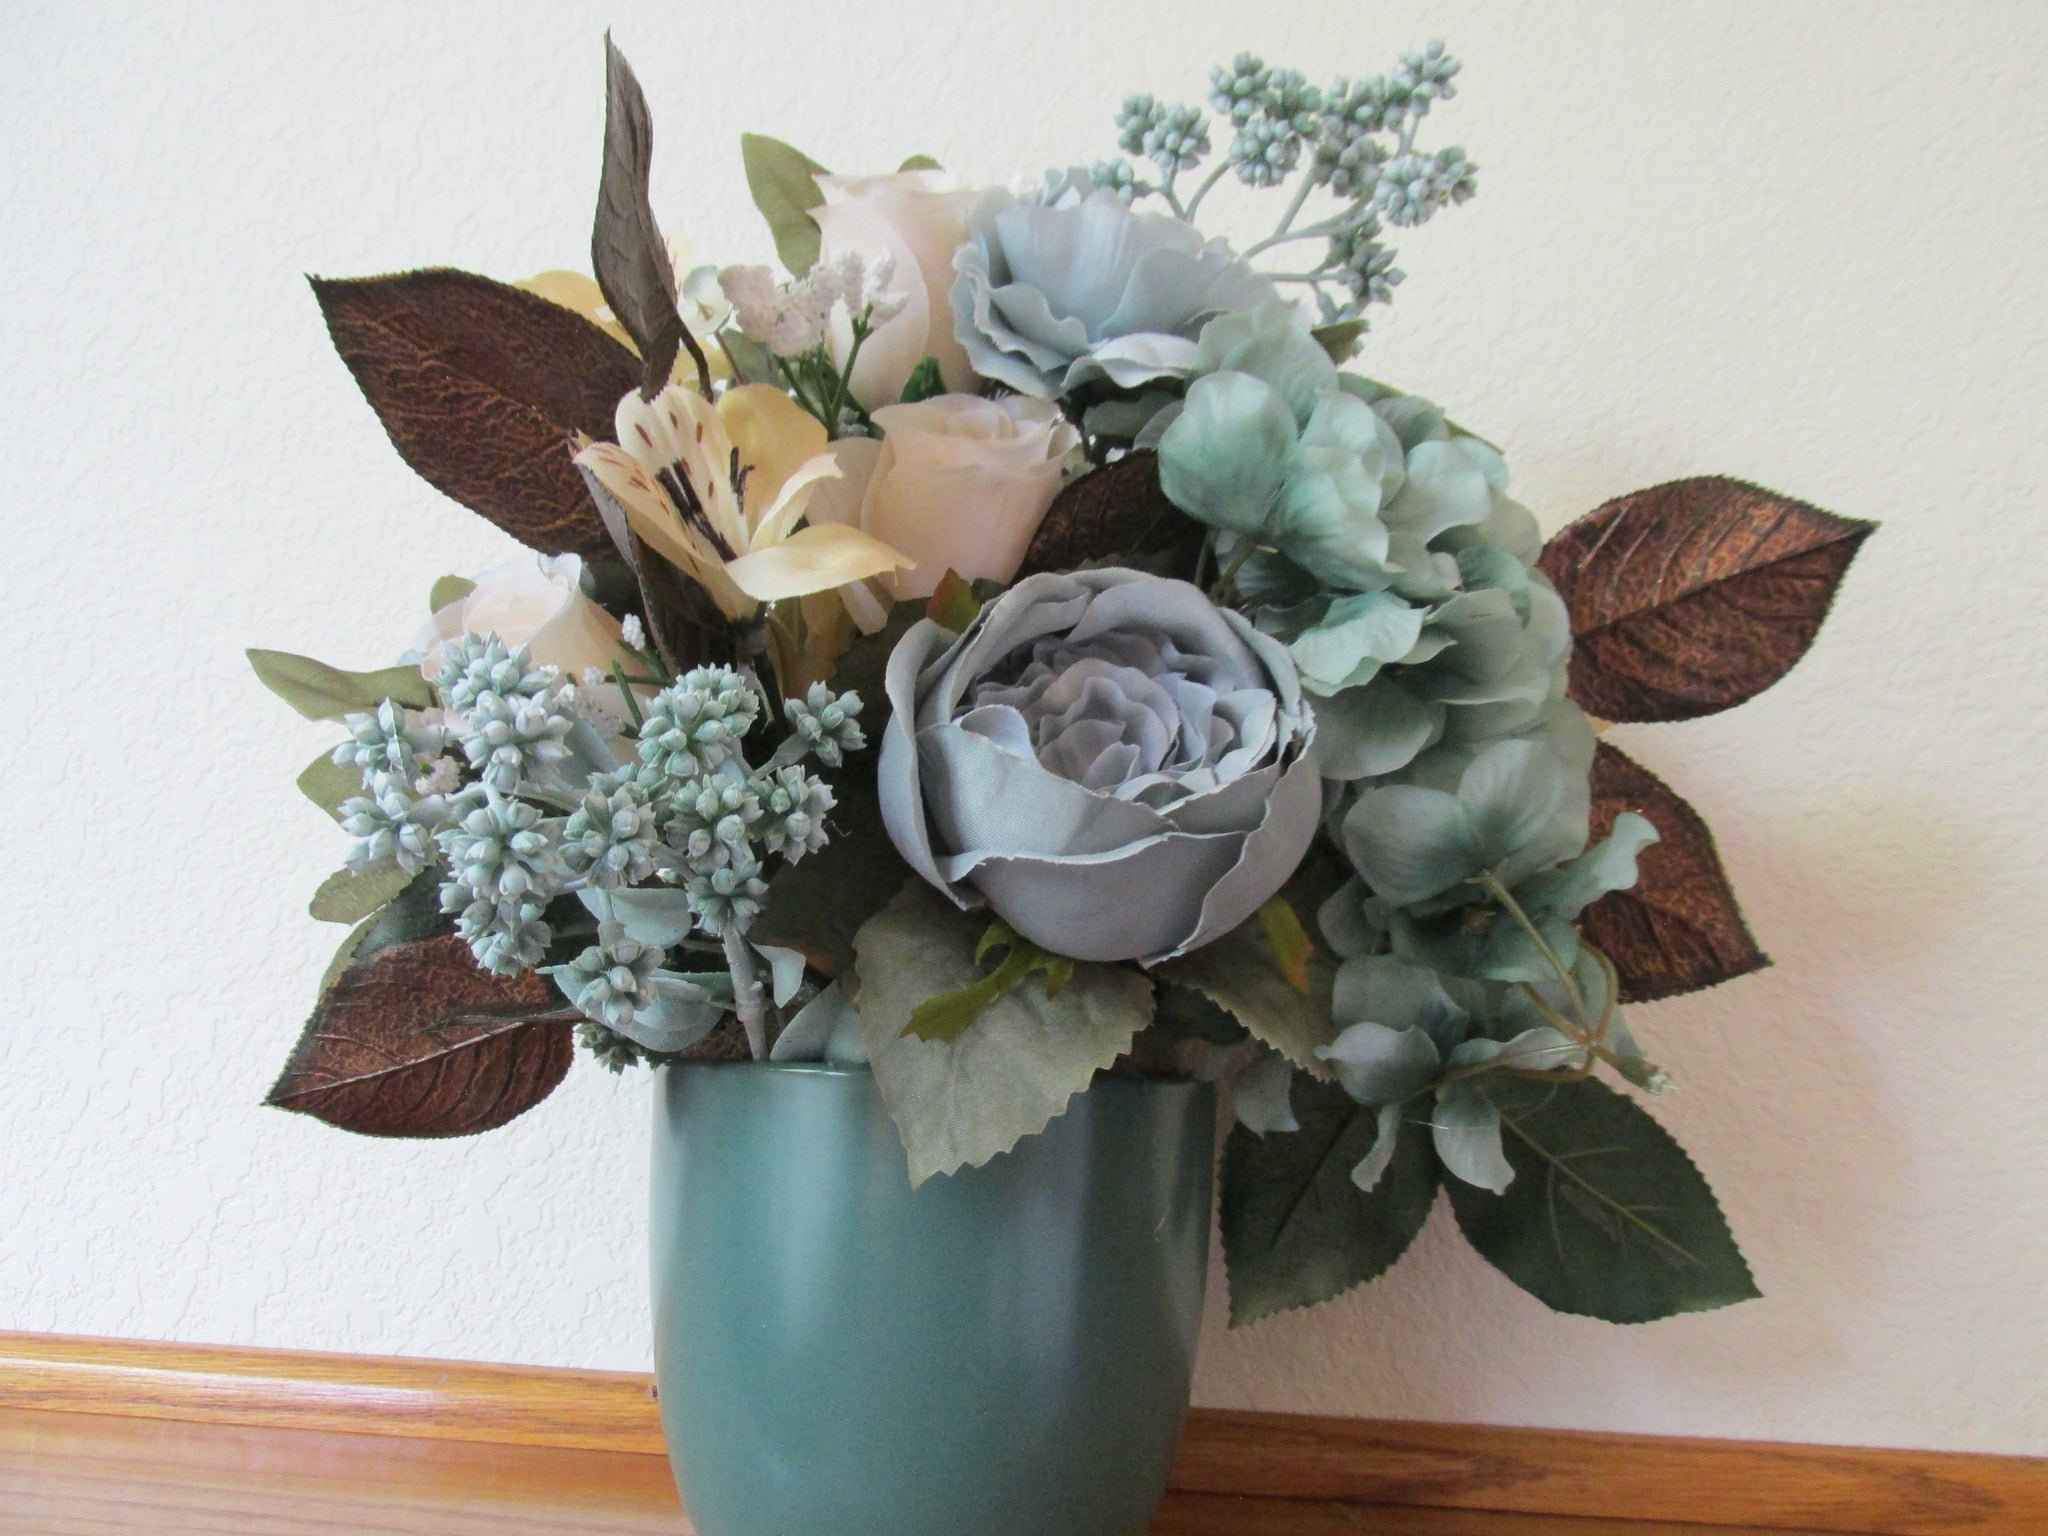 Aqua Seafoam Light Gold, Beige and Copper Brown Silk Fabric Floral Arrangement - Odyssey Creations